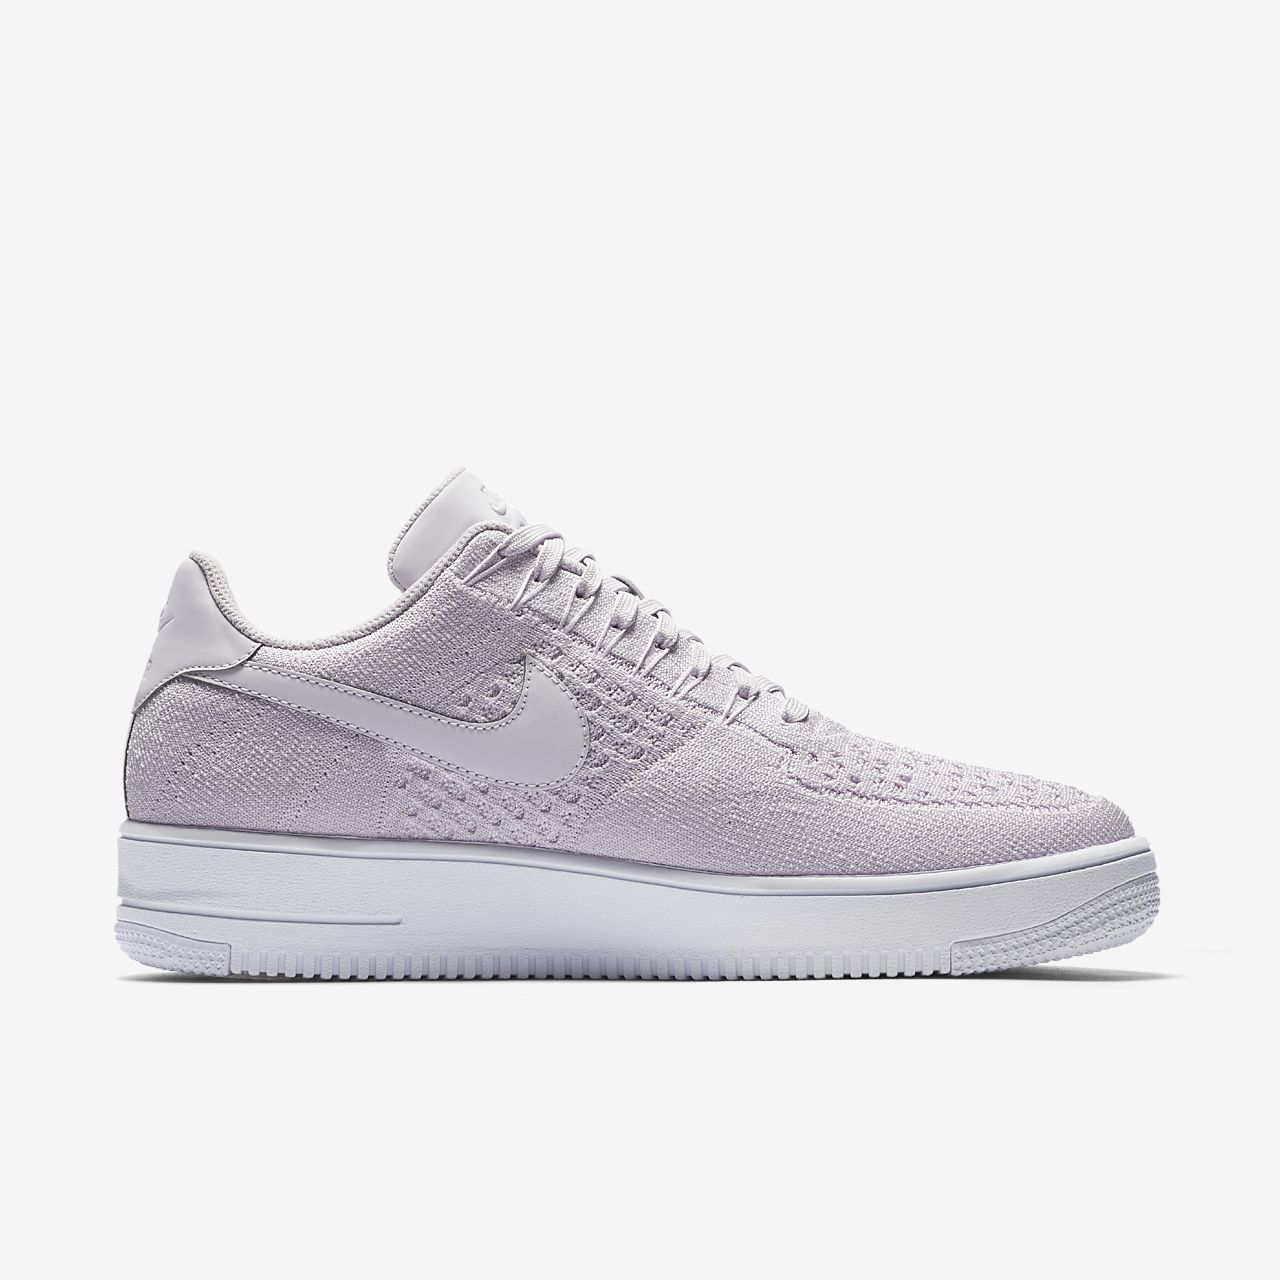 newest 42677 7aec3 Détails. nike air force ultra blanche